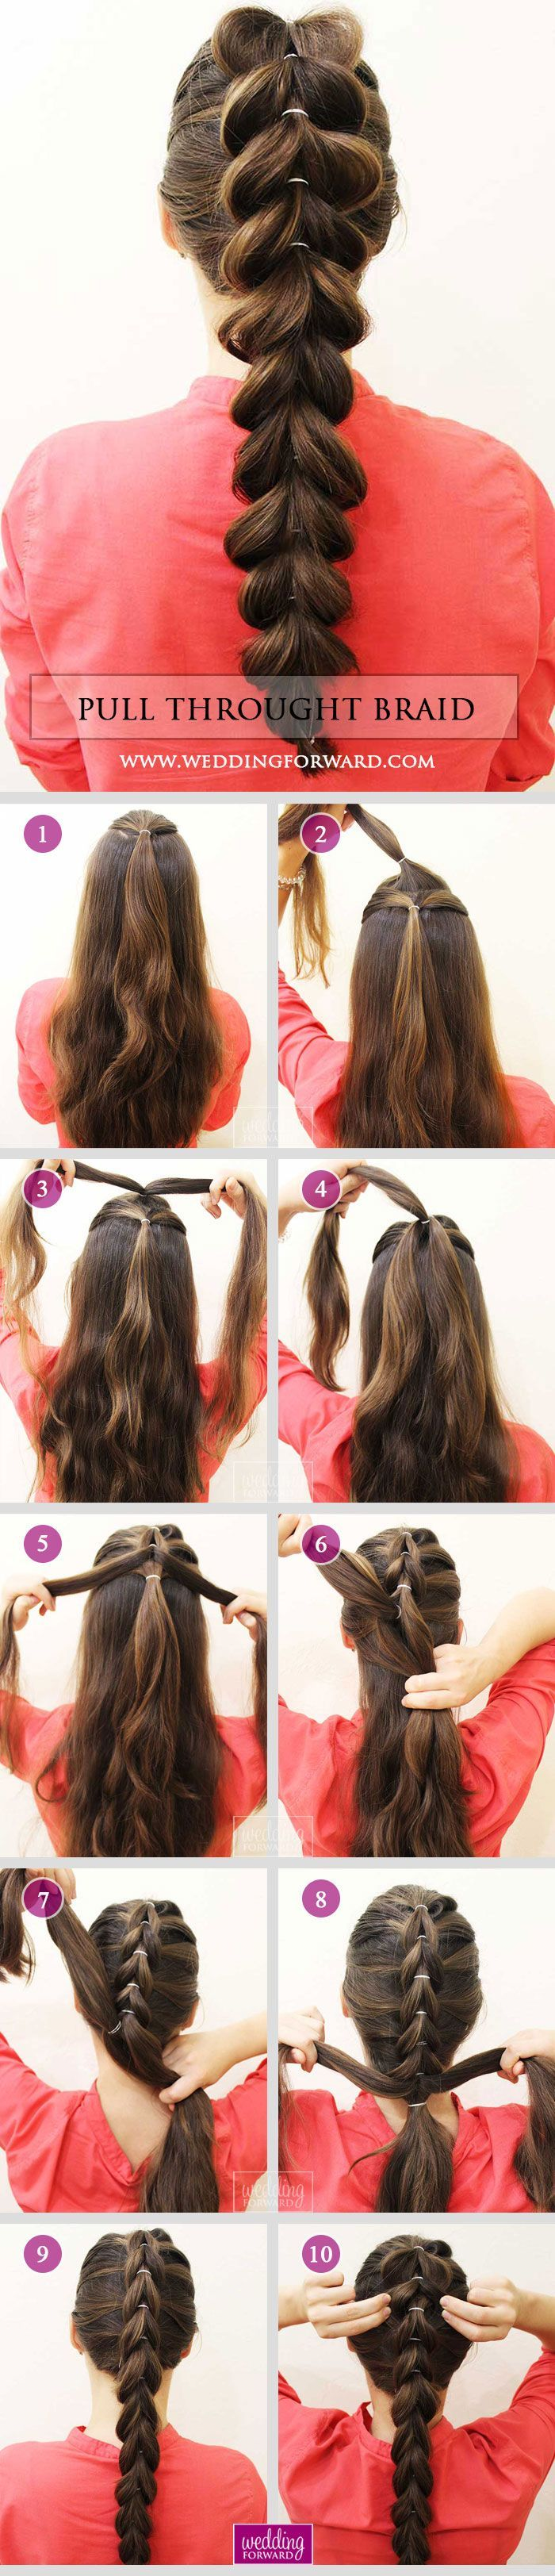 36 Braided Wedding Hair Ideas You Will Love❤️ Stylish Pull Throught Braid at home is very easy! See at this tutorial and DIY step by step with us. viktoria_beaty via Instagram for WeddingForward. See more braided hairstyles here: www.weddingforward.com/ braided-wedding-hair/ #weddings #hairstyles